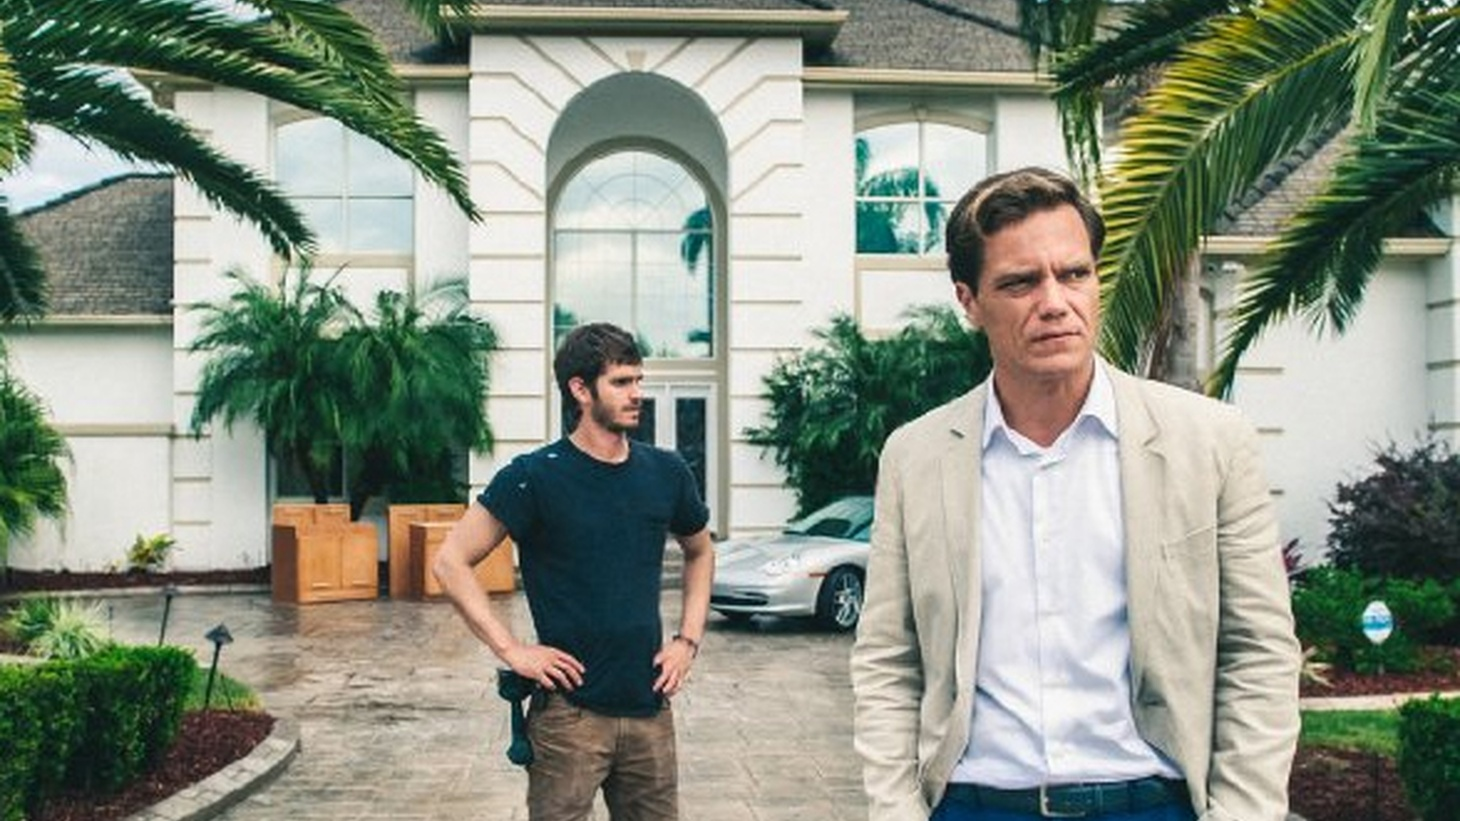 99 Homes is a relatively small, tough-minded drama about pitiless people doing unprincipled things. And it turns out to be one of the most interesting, elegantly crafted and improbably entertaining films to come along in quite a while.